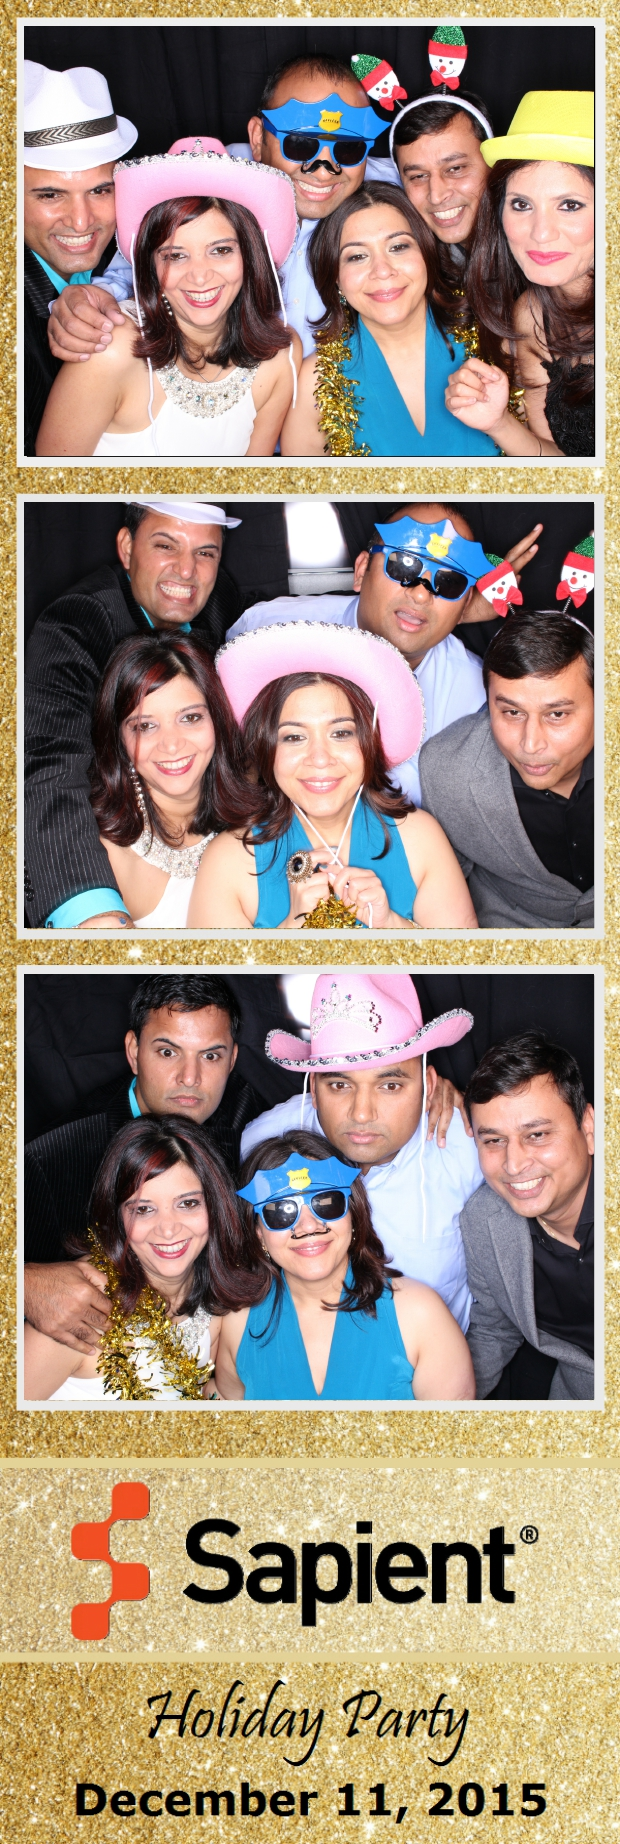 Guest House Events Photo Booth Sapient Holiday Party (33).jpg